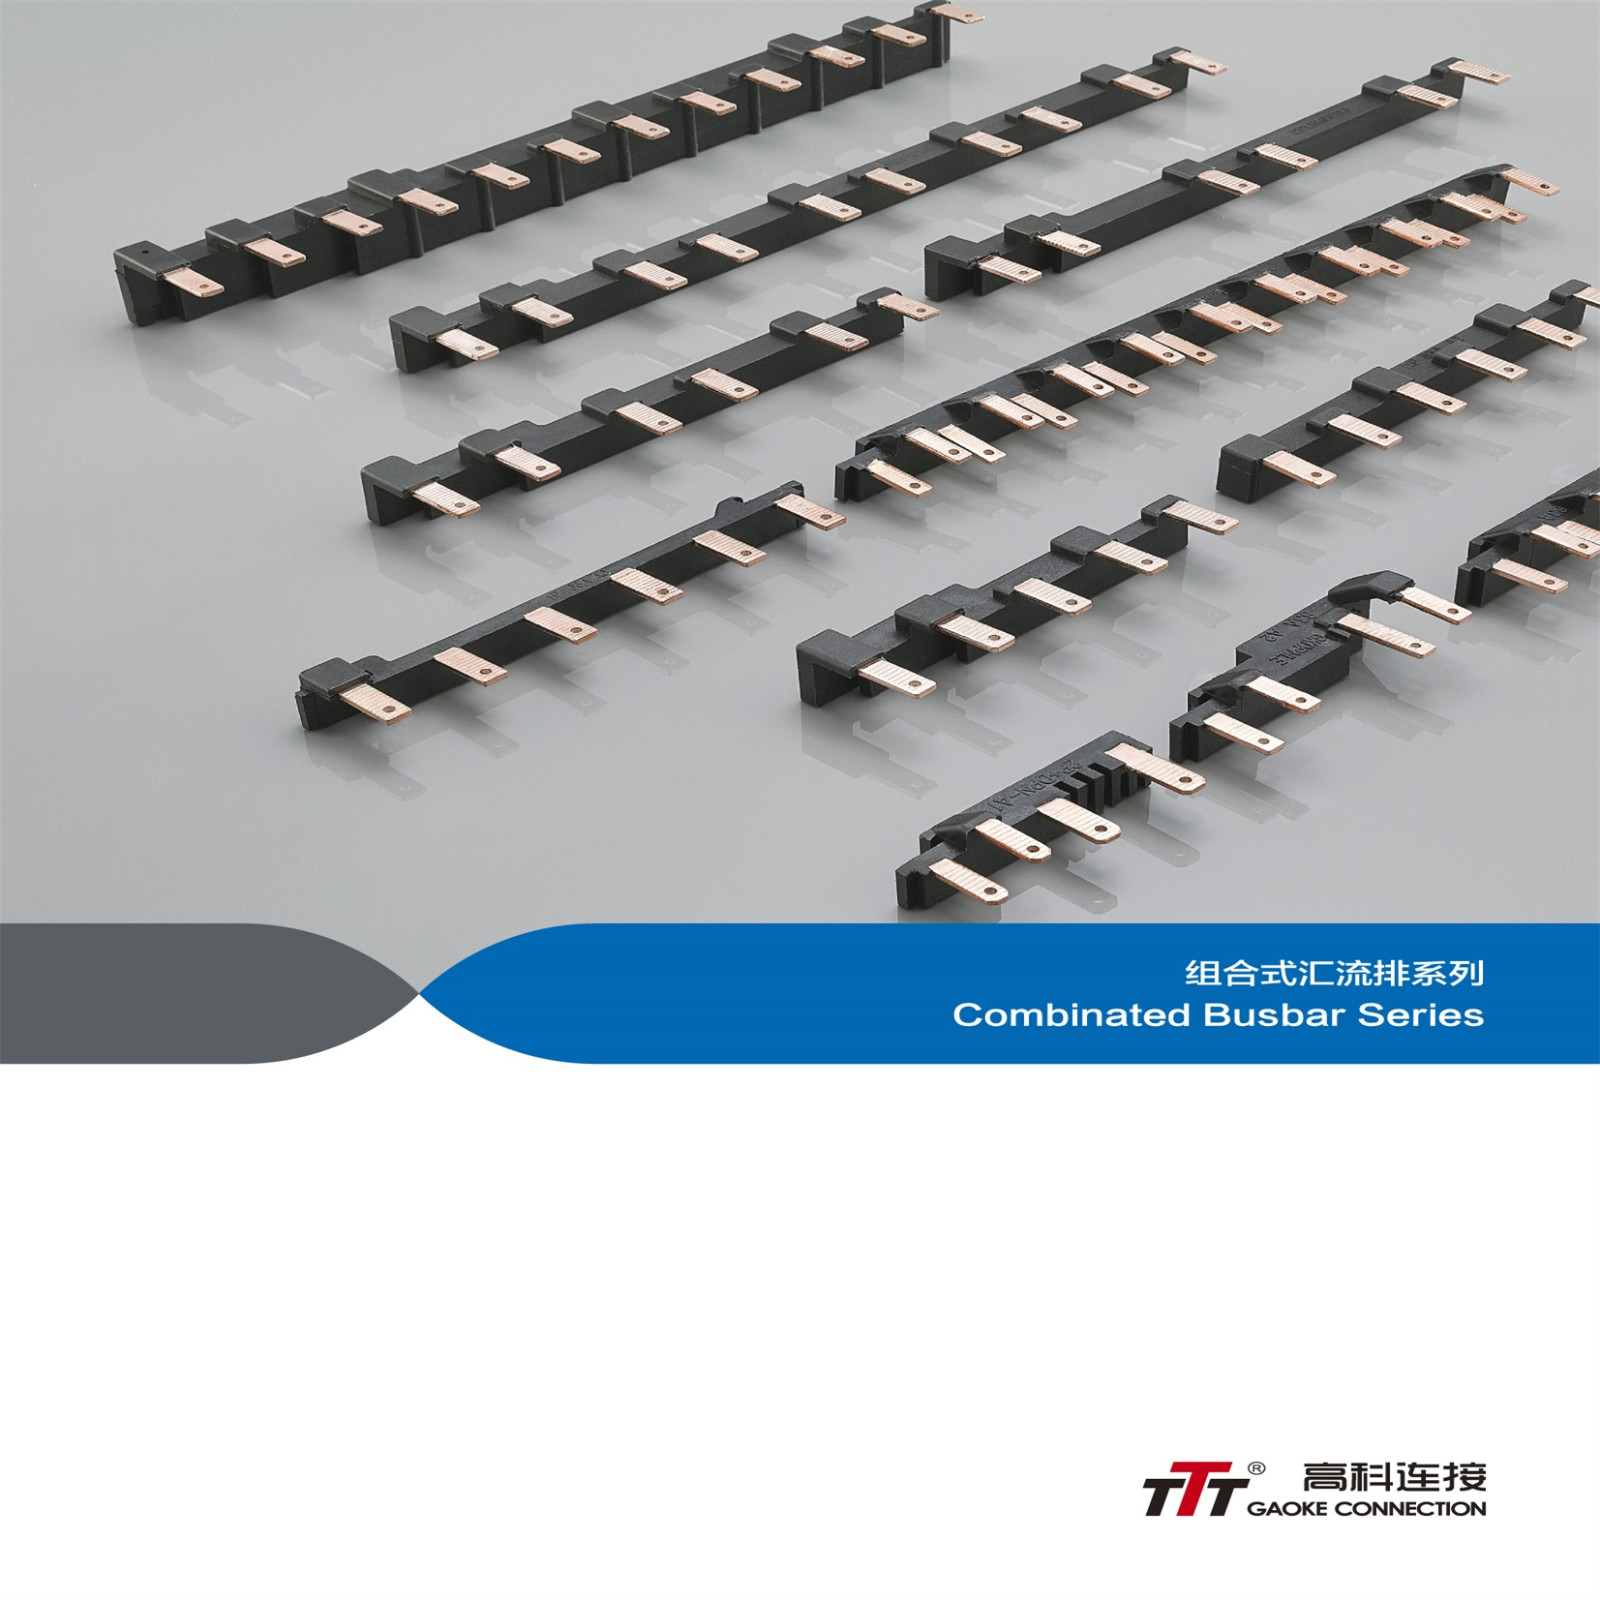 COMBINATED BUSBAR